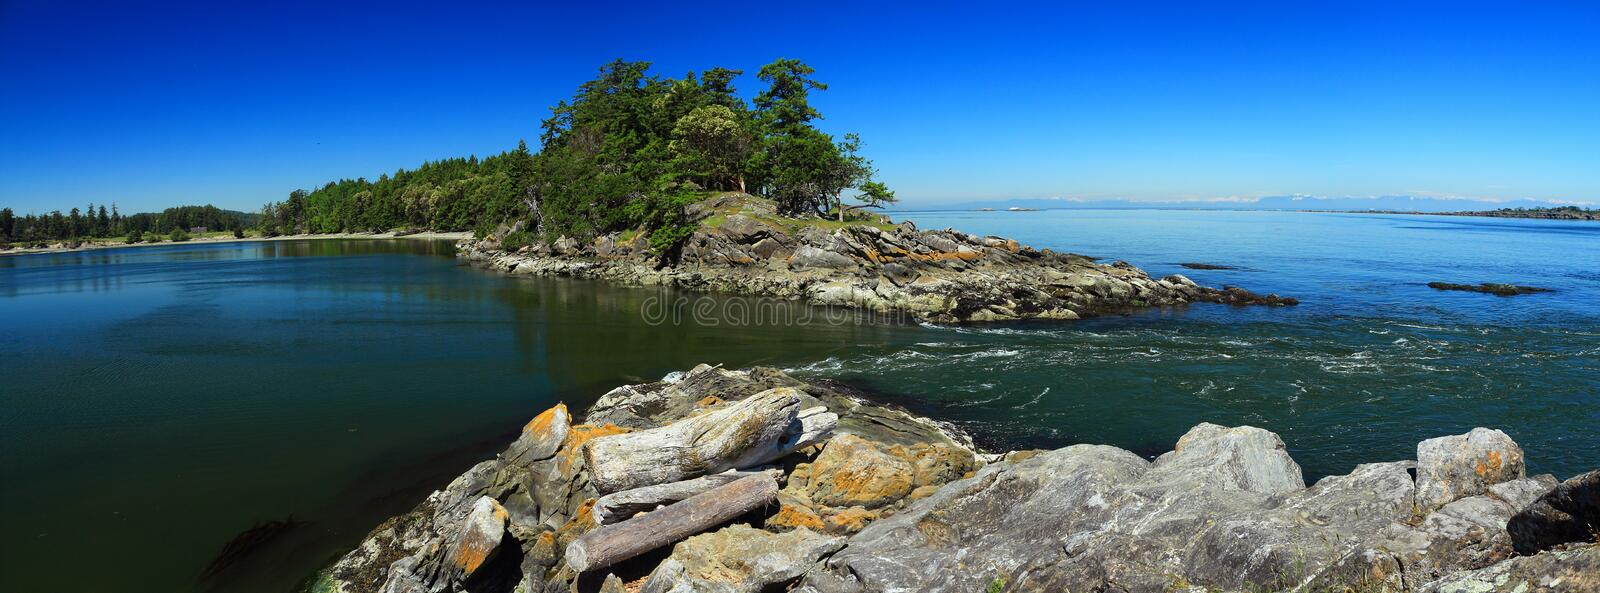 Panorama of Tidal Current at Boat Pass between Samuel and Saturna Islands, Gulf Islands National Park, British Columbia, Canada royalty free stock photo